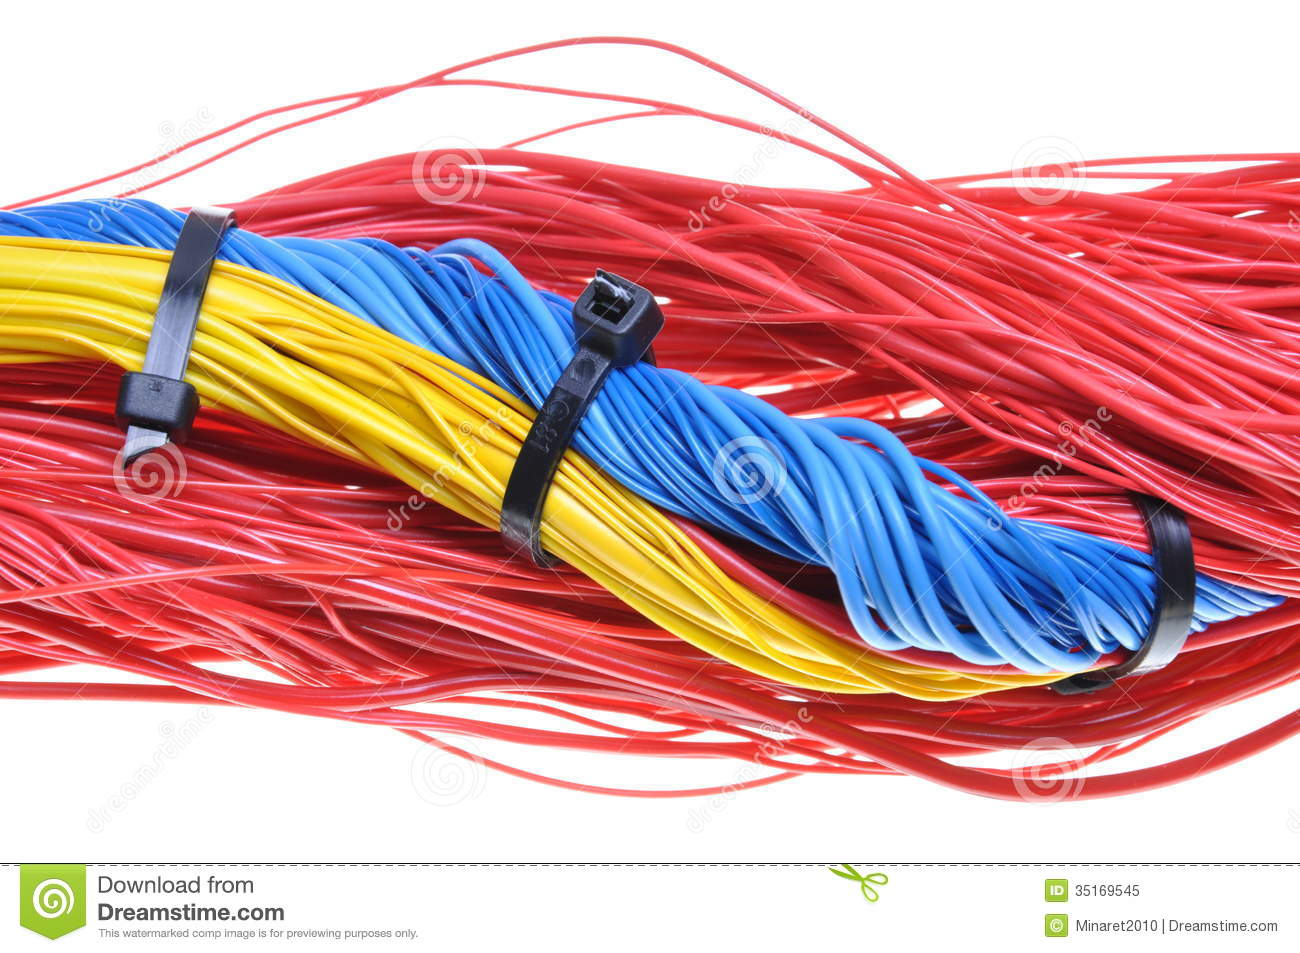 electrical wires with cable ties